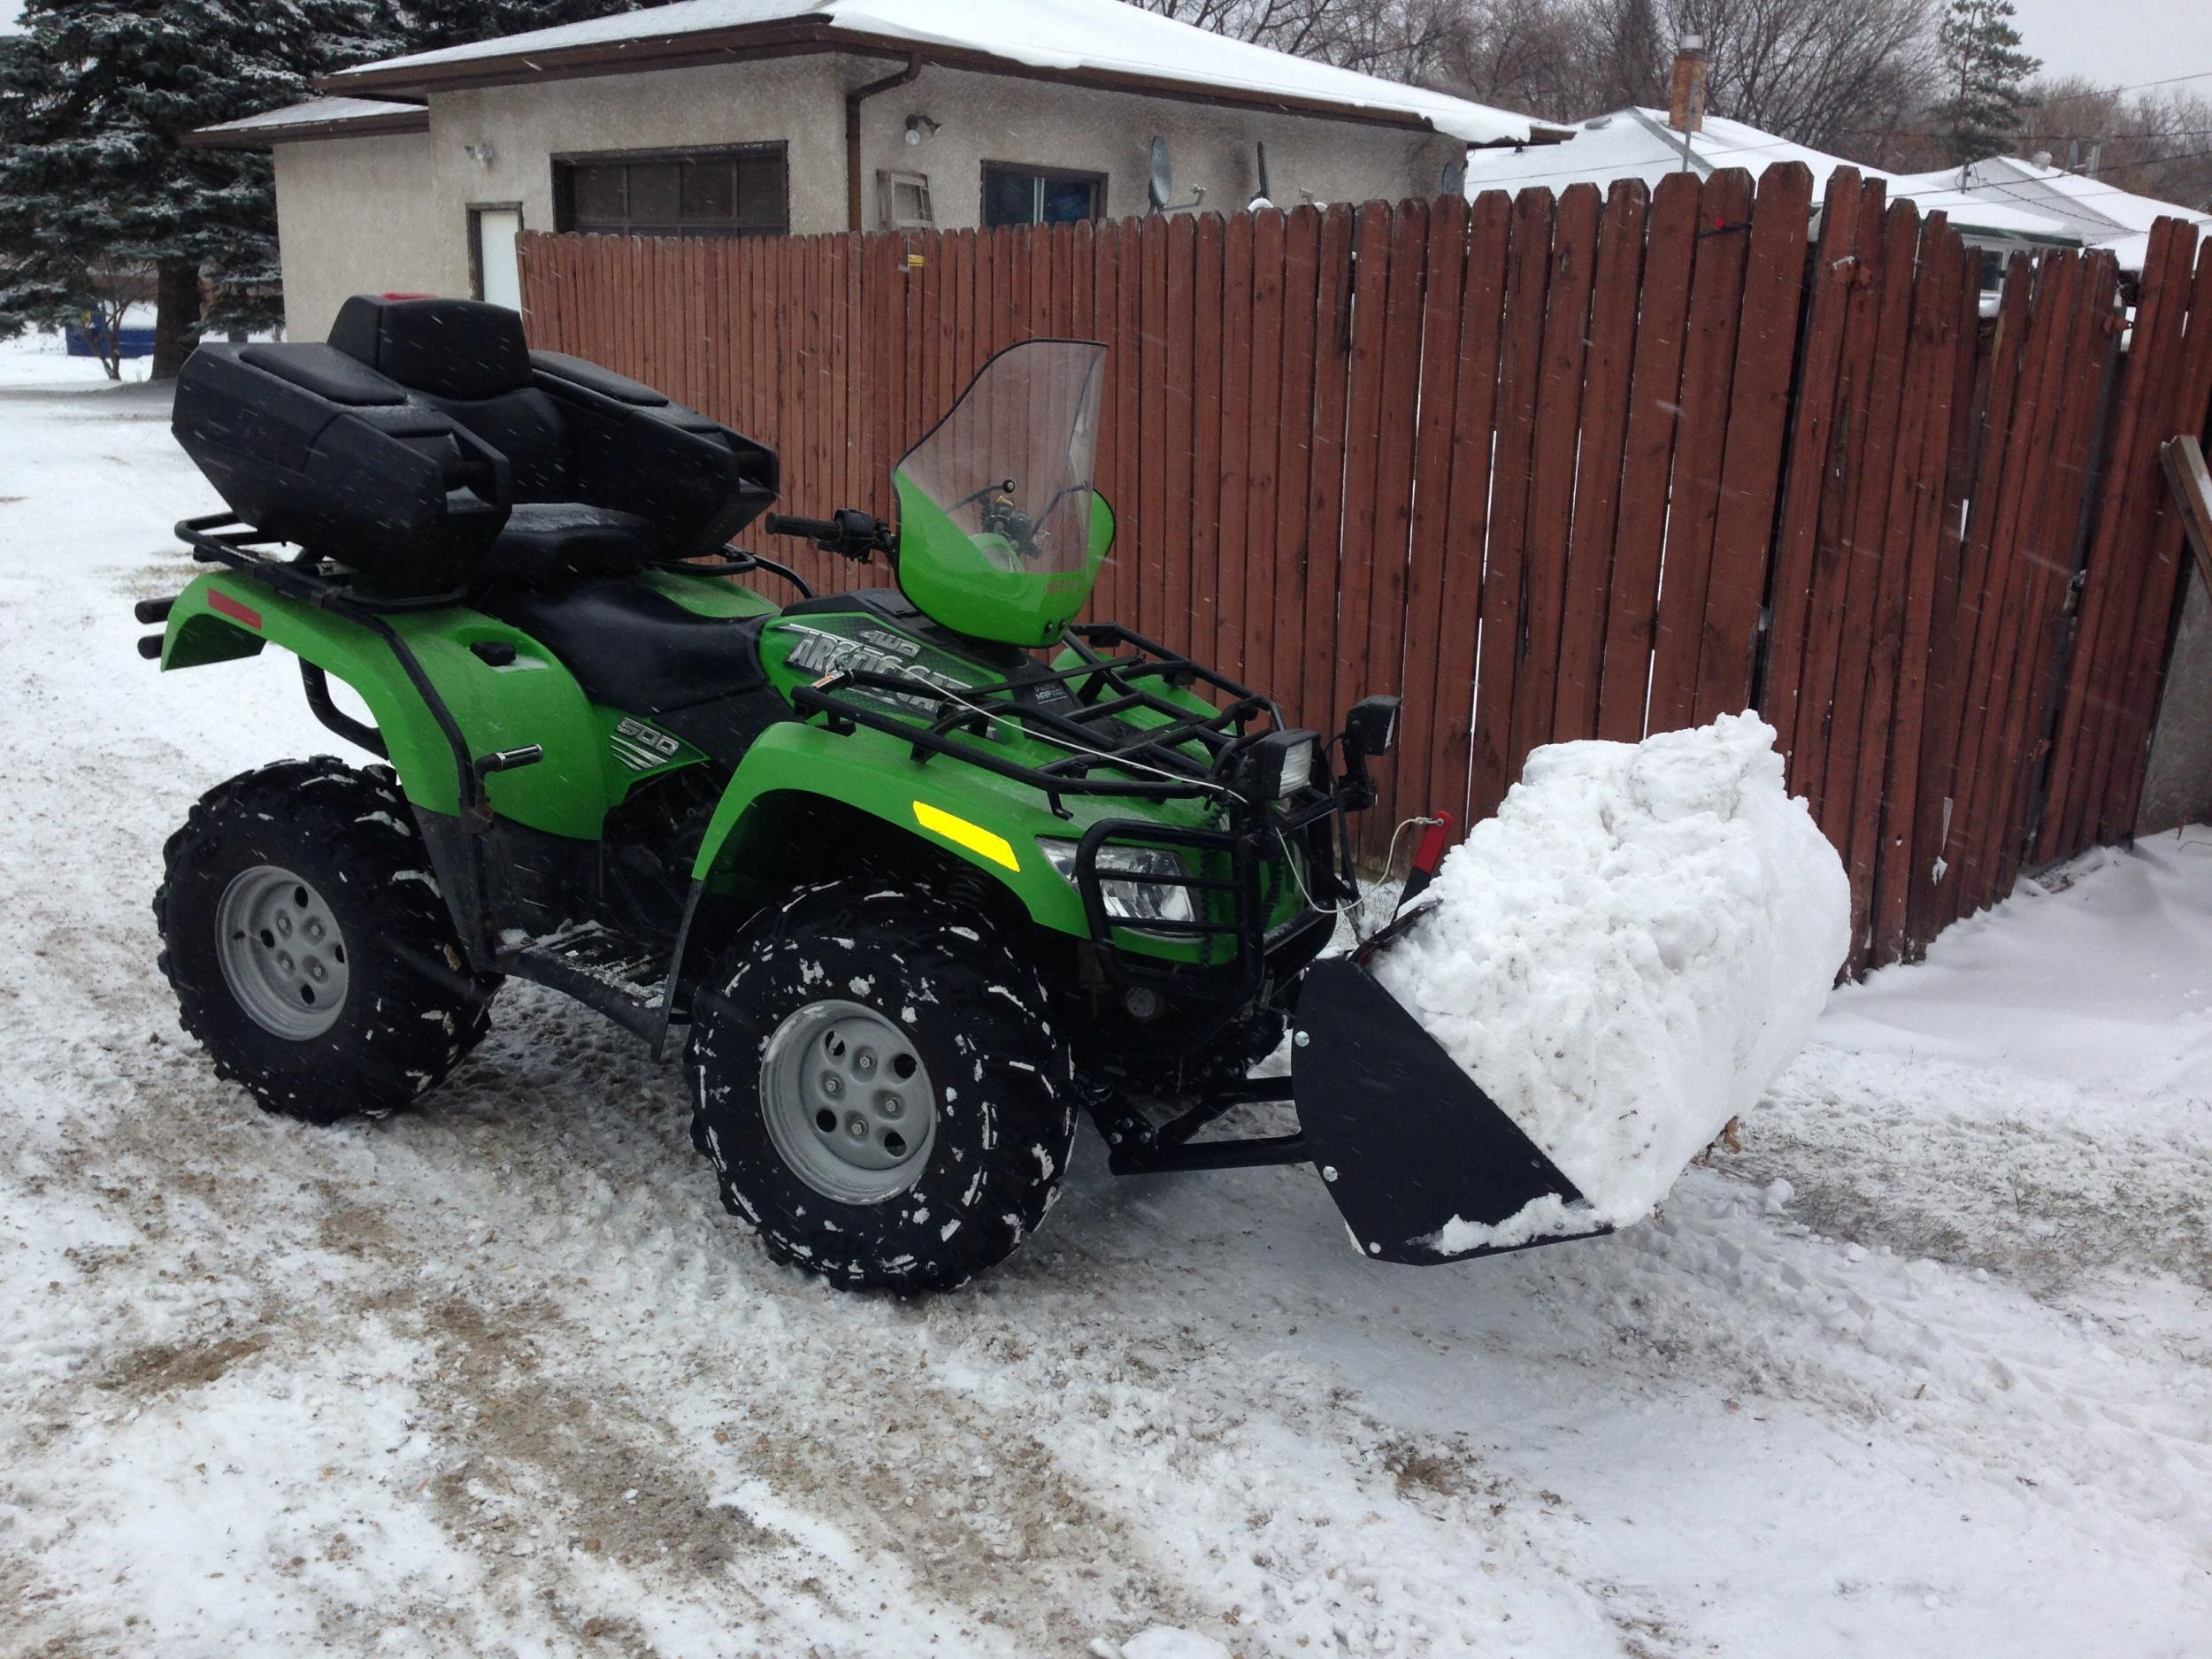 Arctic Cat Atv >> Pros and Cons of Swisher and Warn Front Bucket Loader - ArcticChat.com - Arctic Cat Forum